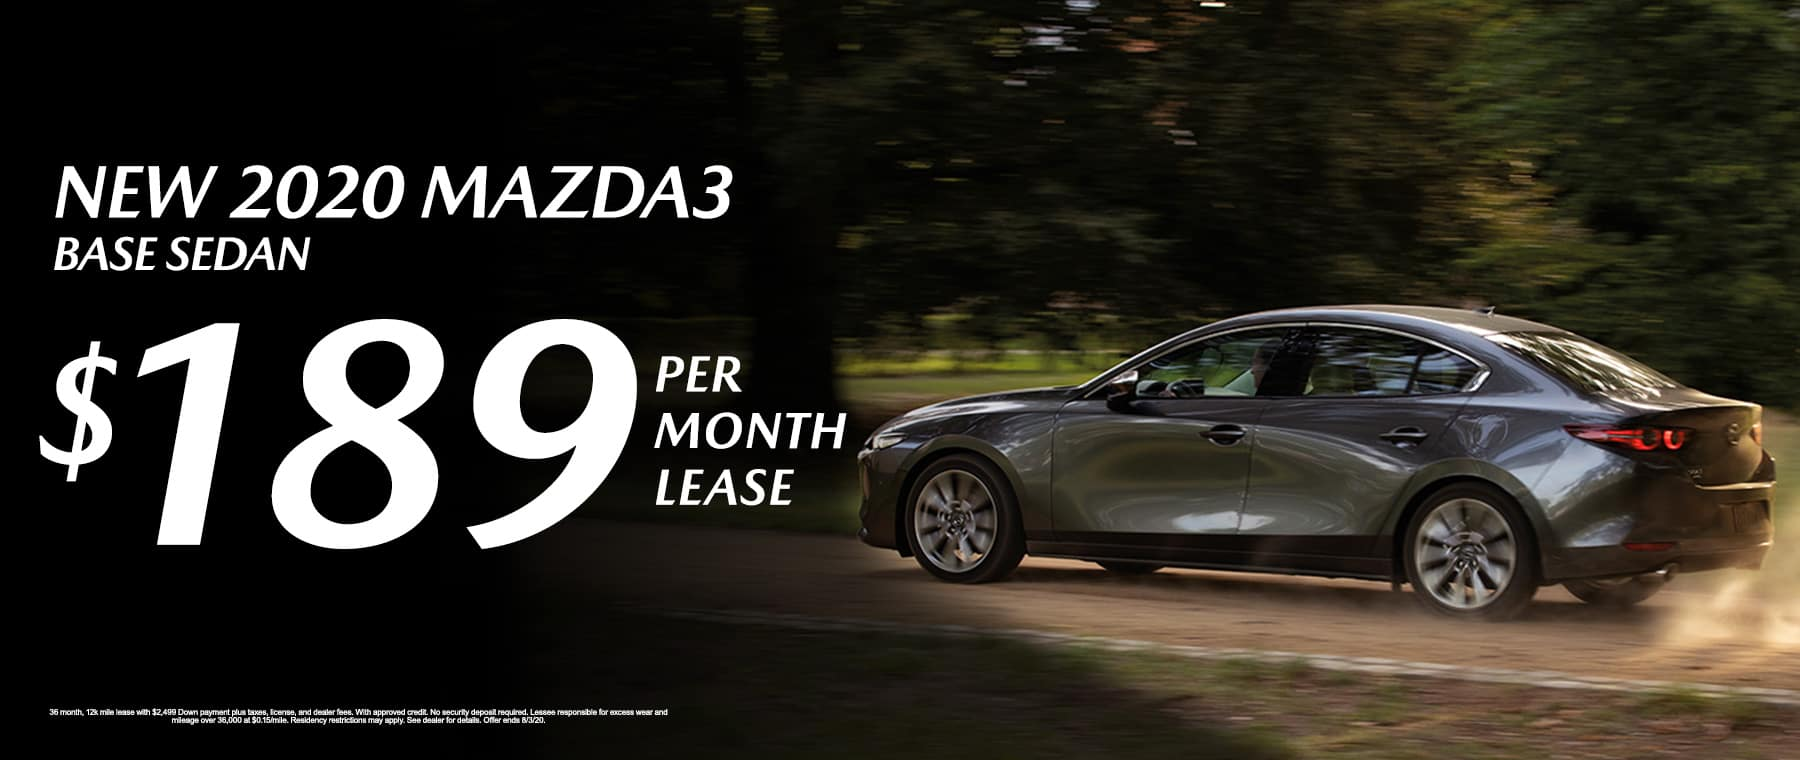 New 2020 Mazda3 Base Sedan at Mazda of Fort Walton Beach